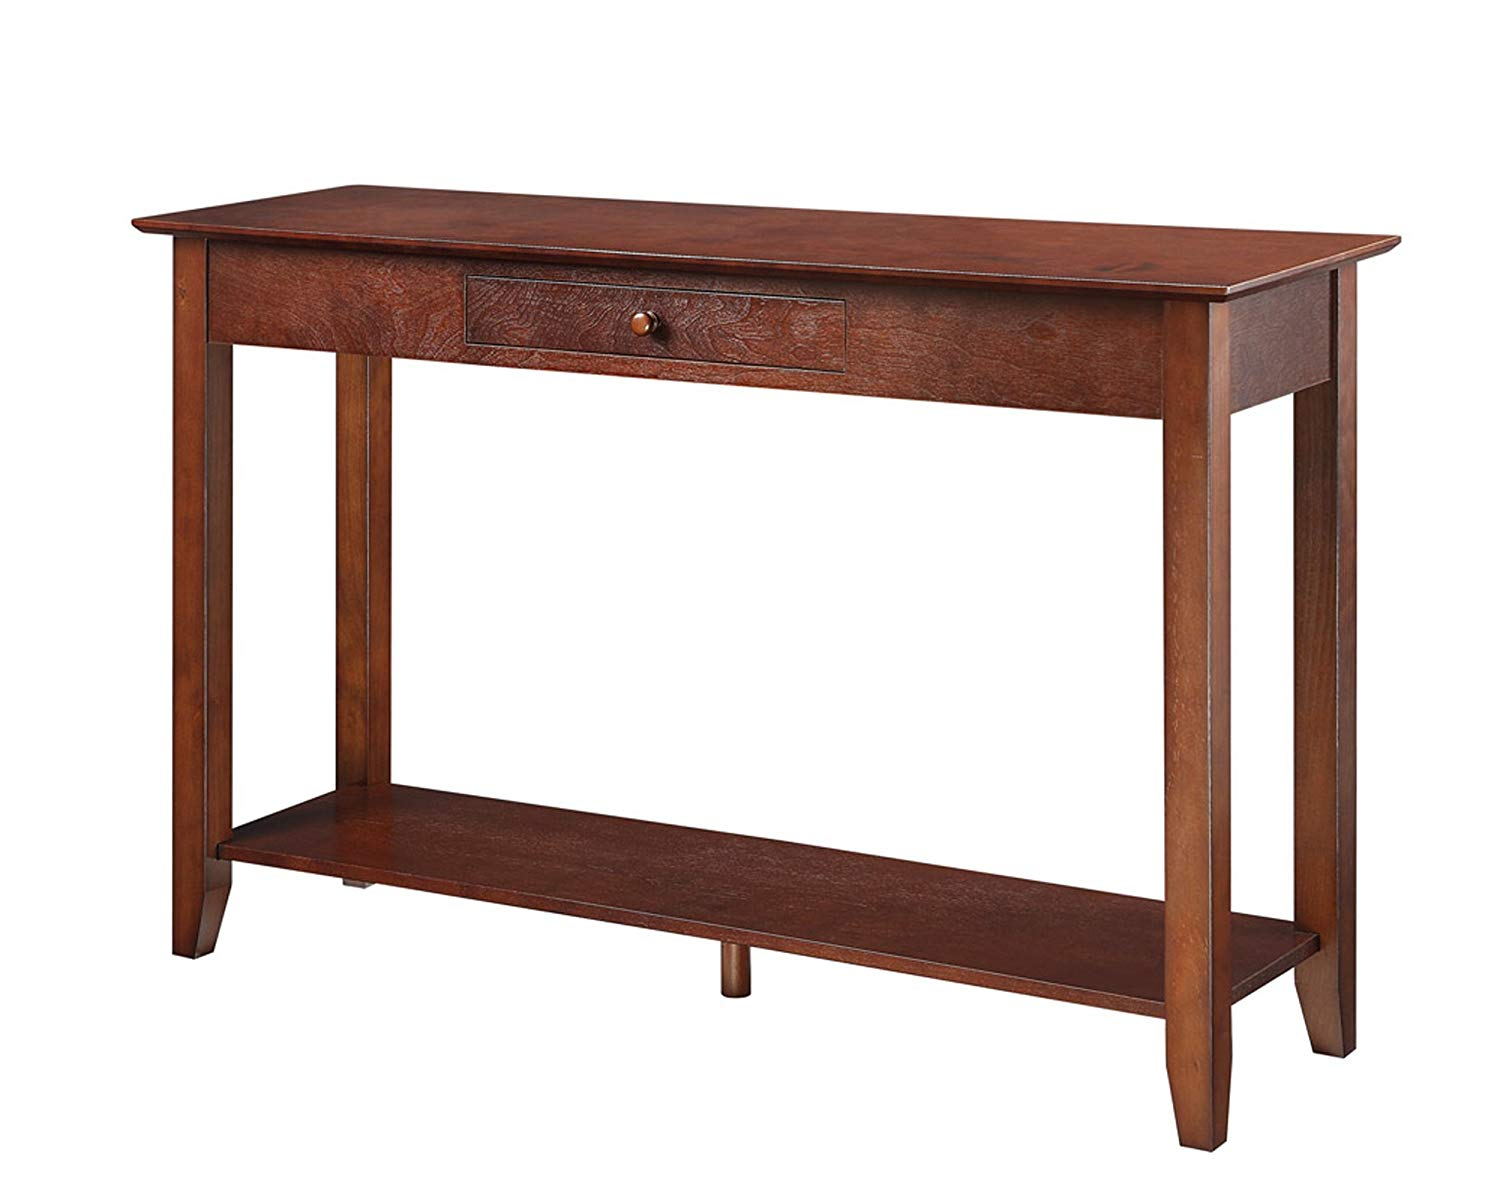 convenience concepts american heritage console table base accent target with drawer and shelf espresso kitchen dining cherry furniture white resin outdoor side tables square